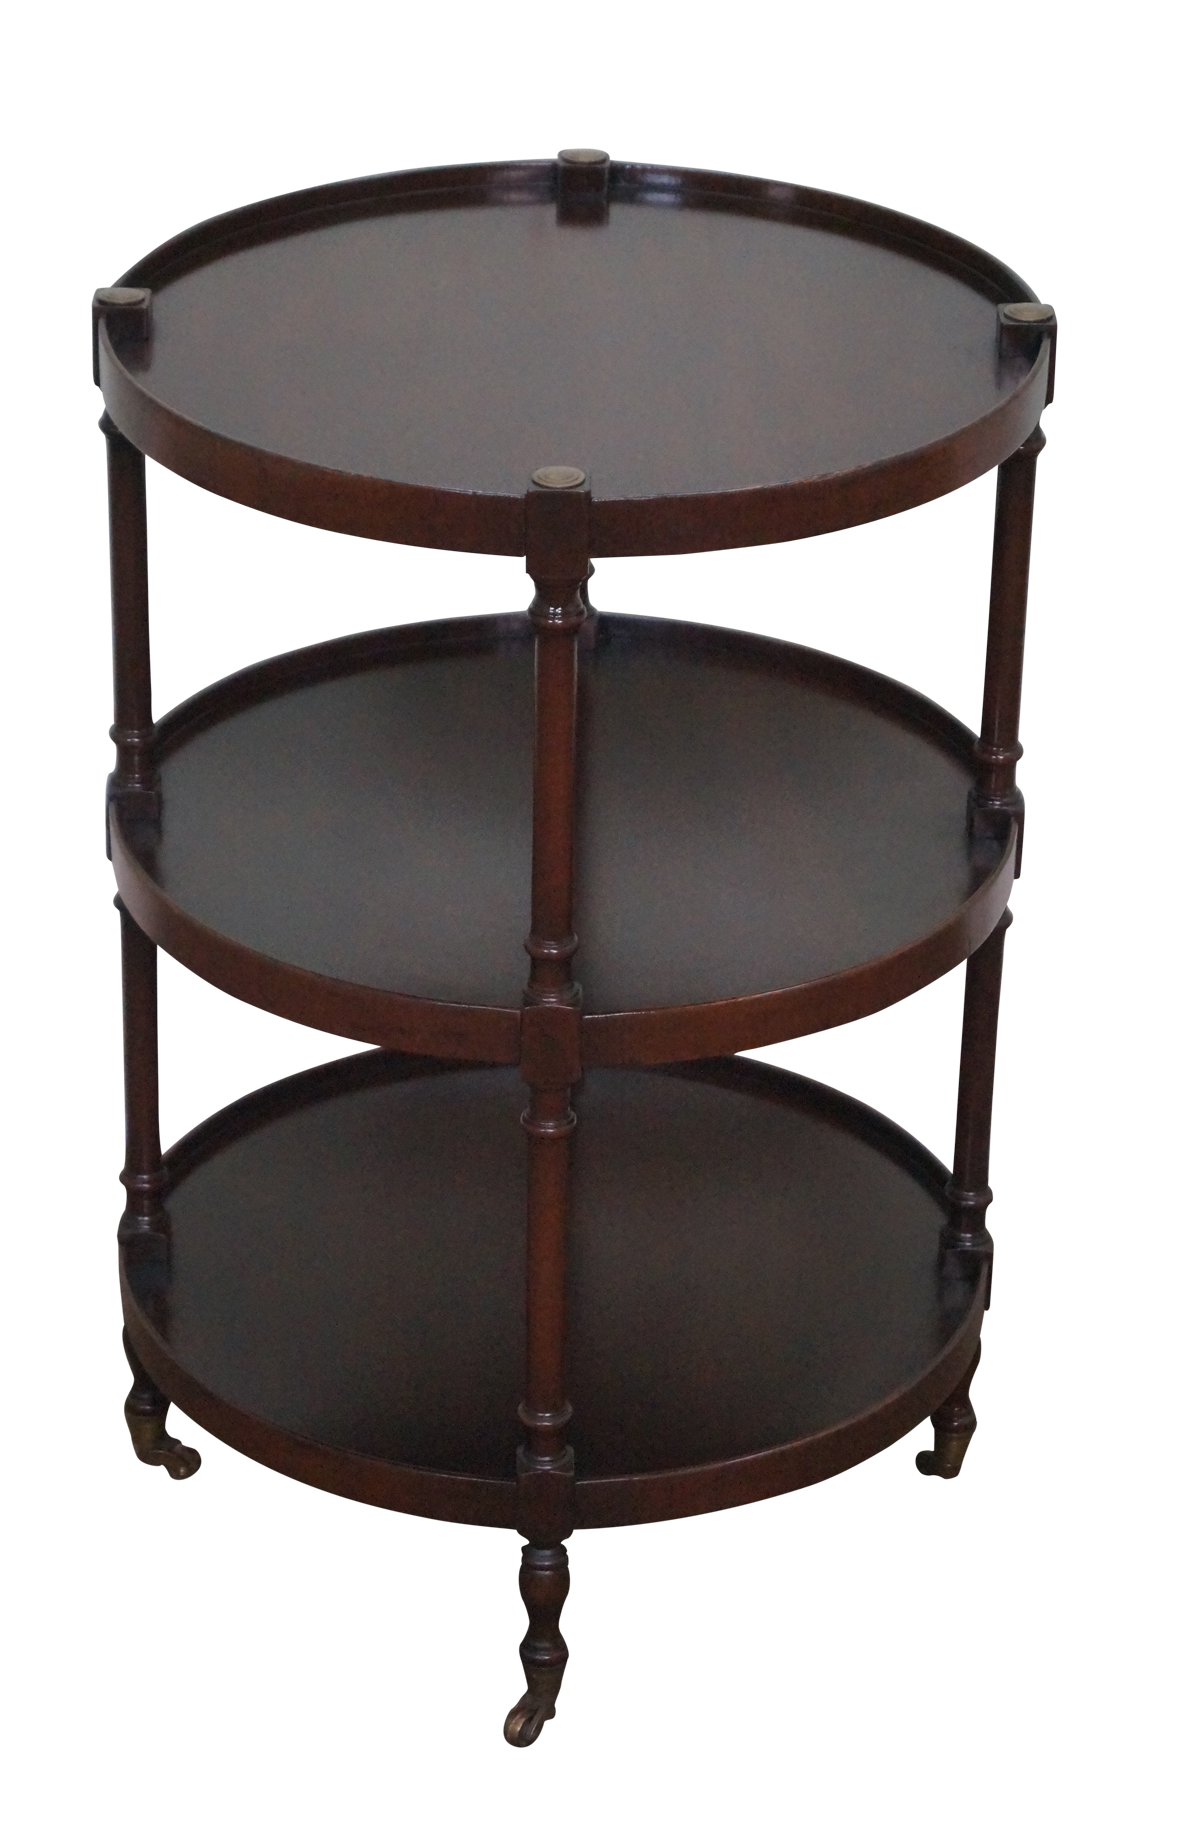 Brandt Vintage Mahogany Round 3 Tier Side Table